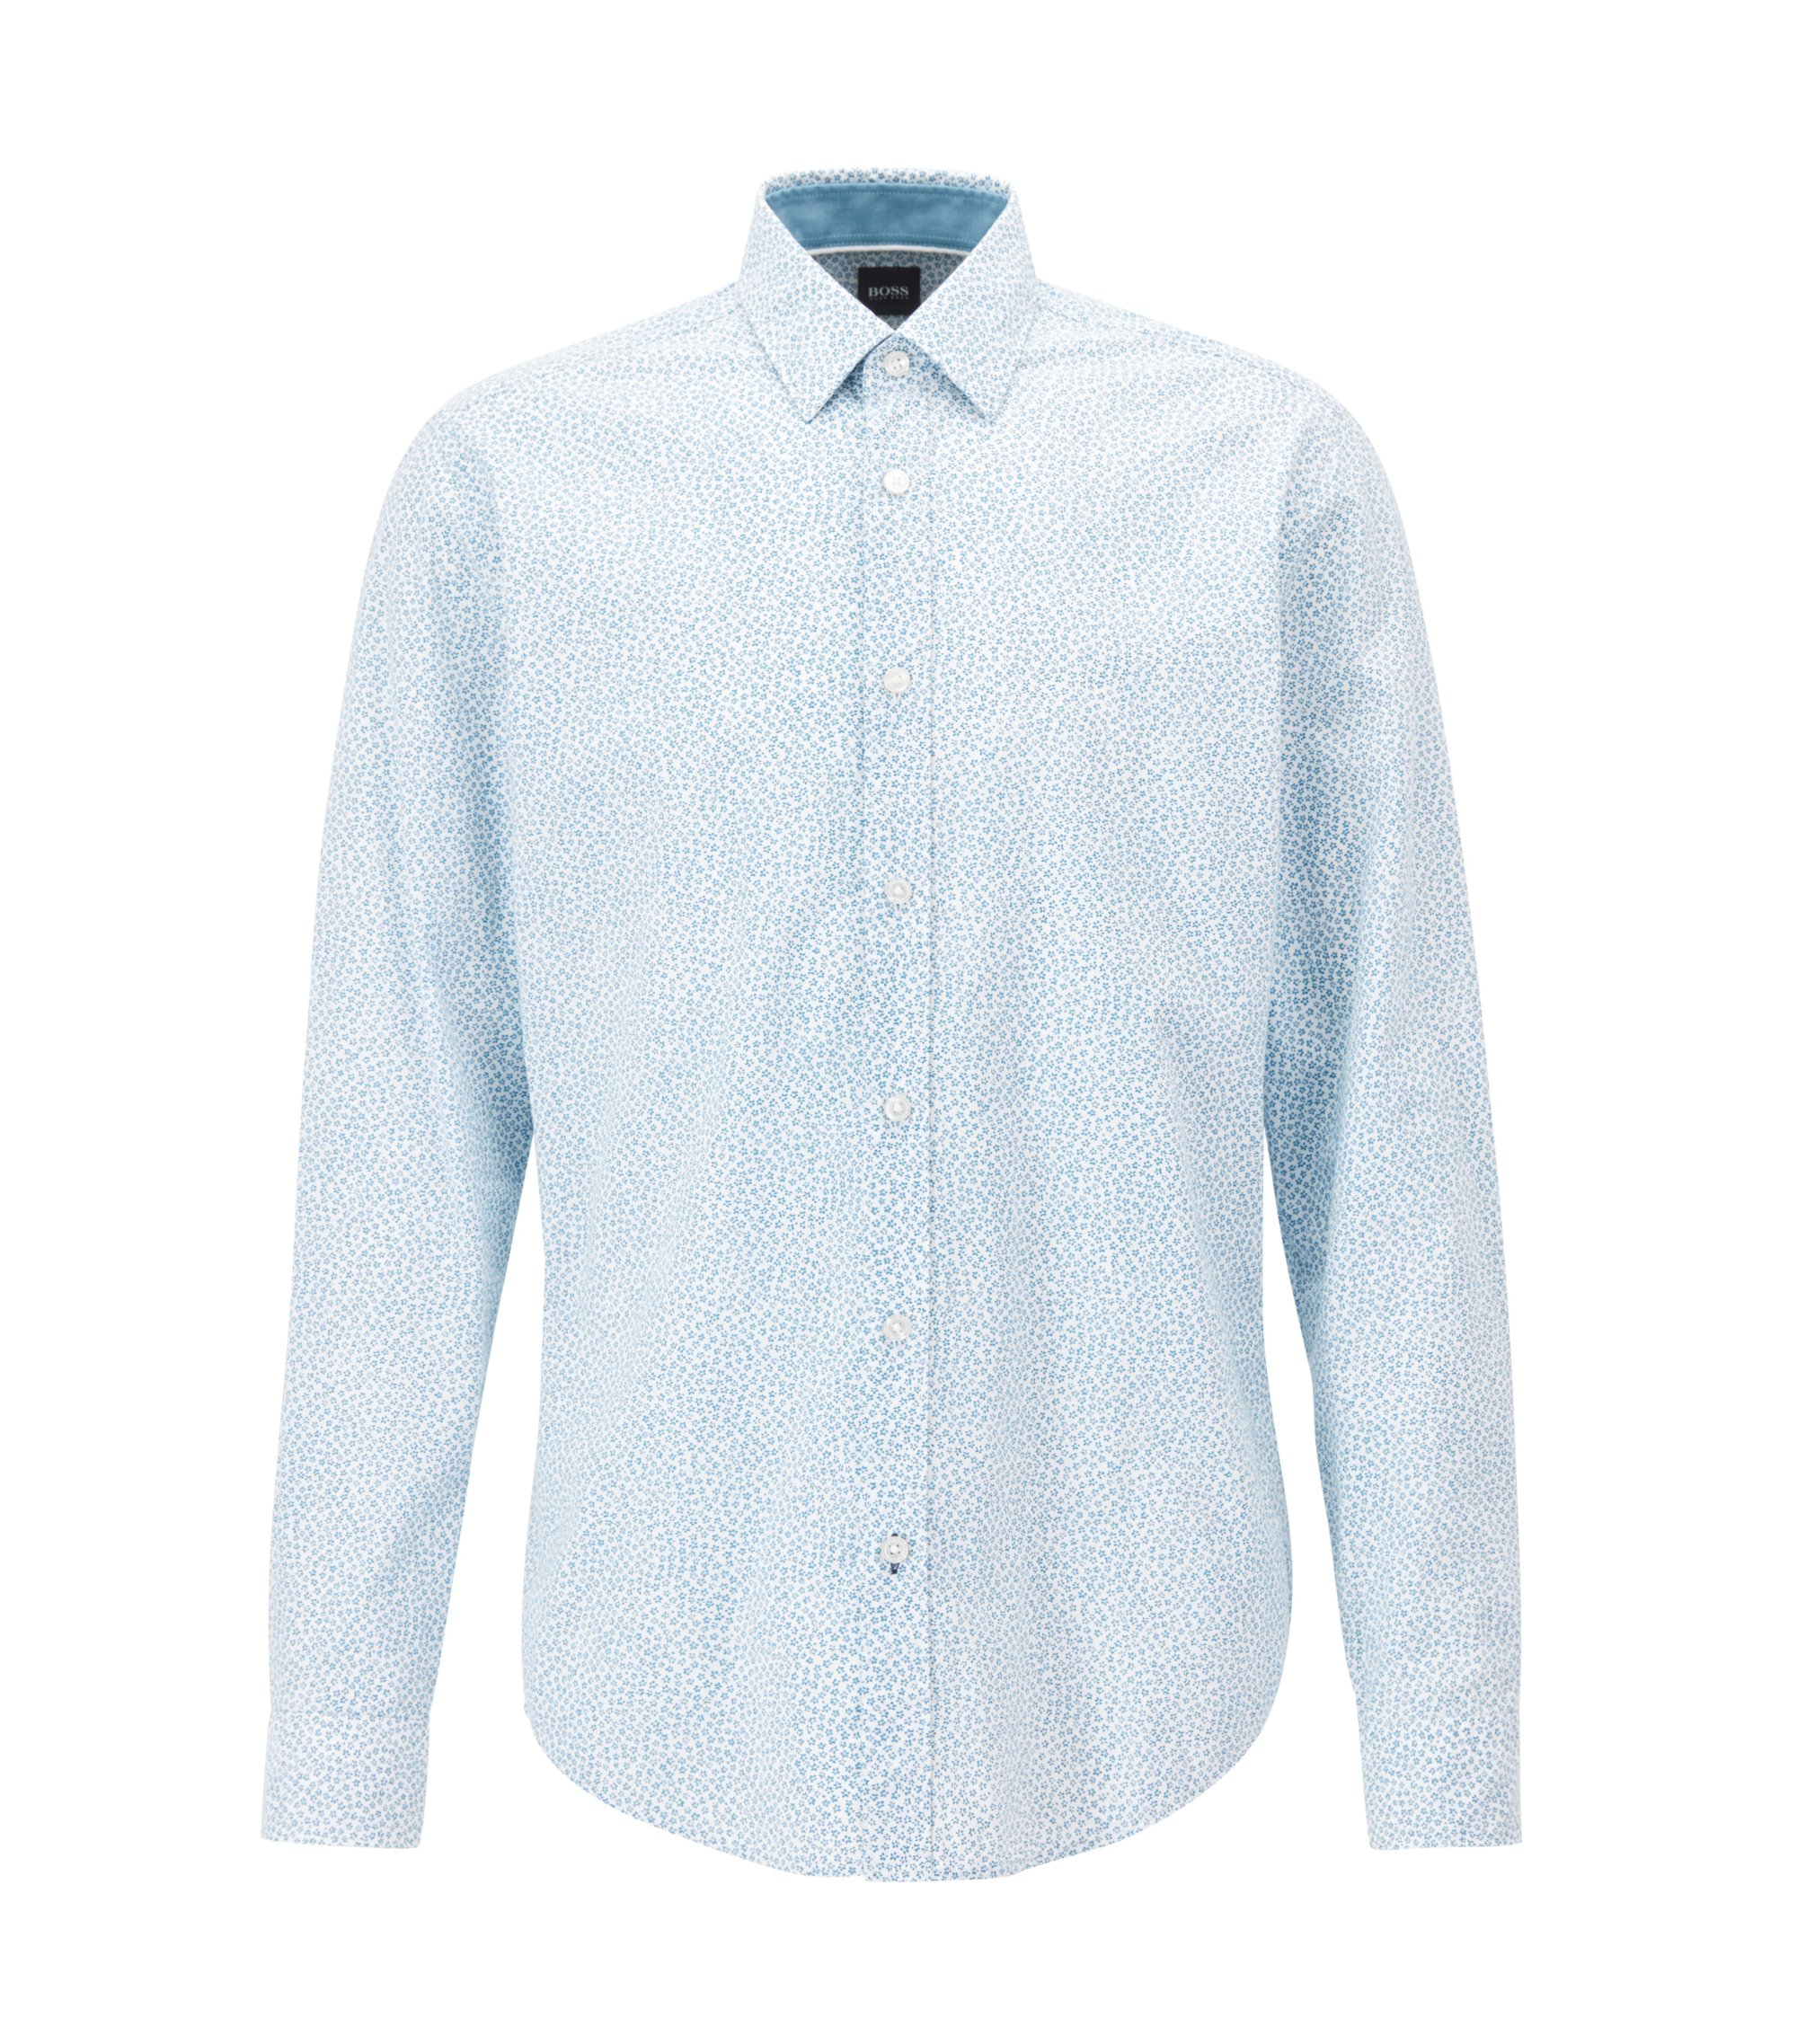 Slim-fit shirt in floral-print cotton, Turquoise